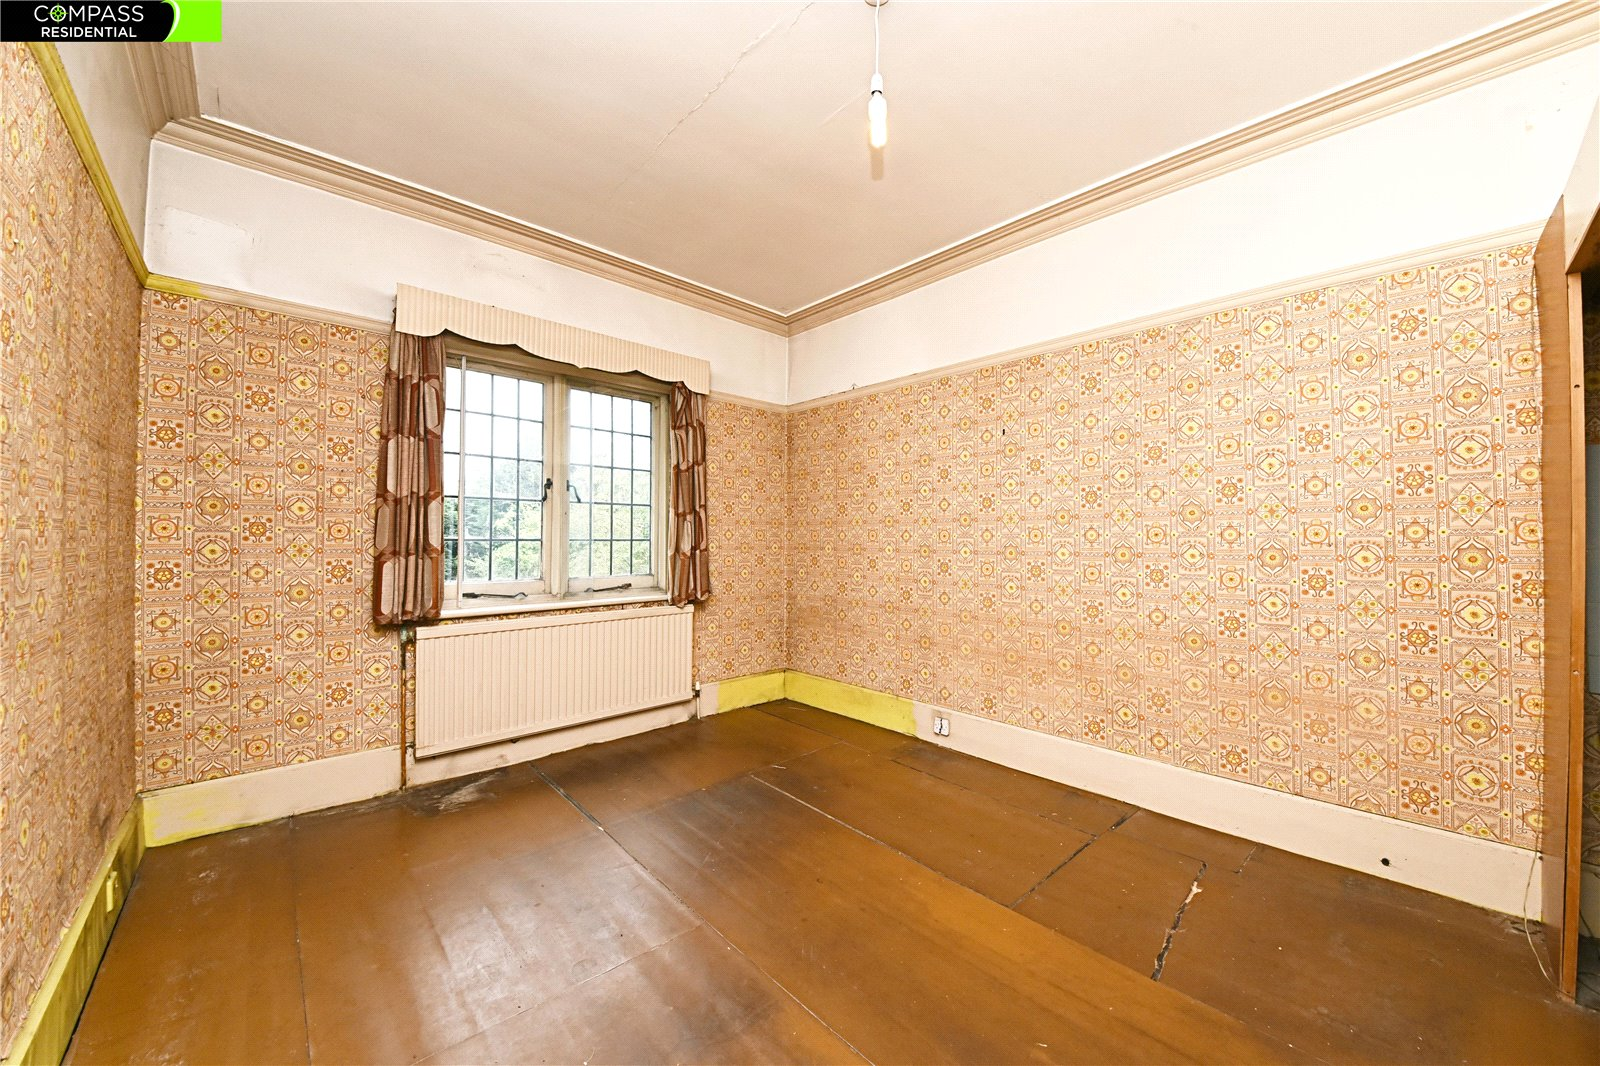 6 bed house for sale in Whetstone, N20 0NN 11